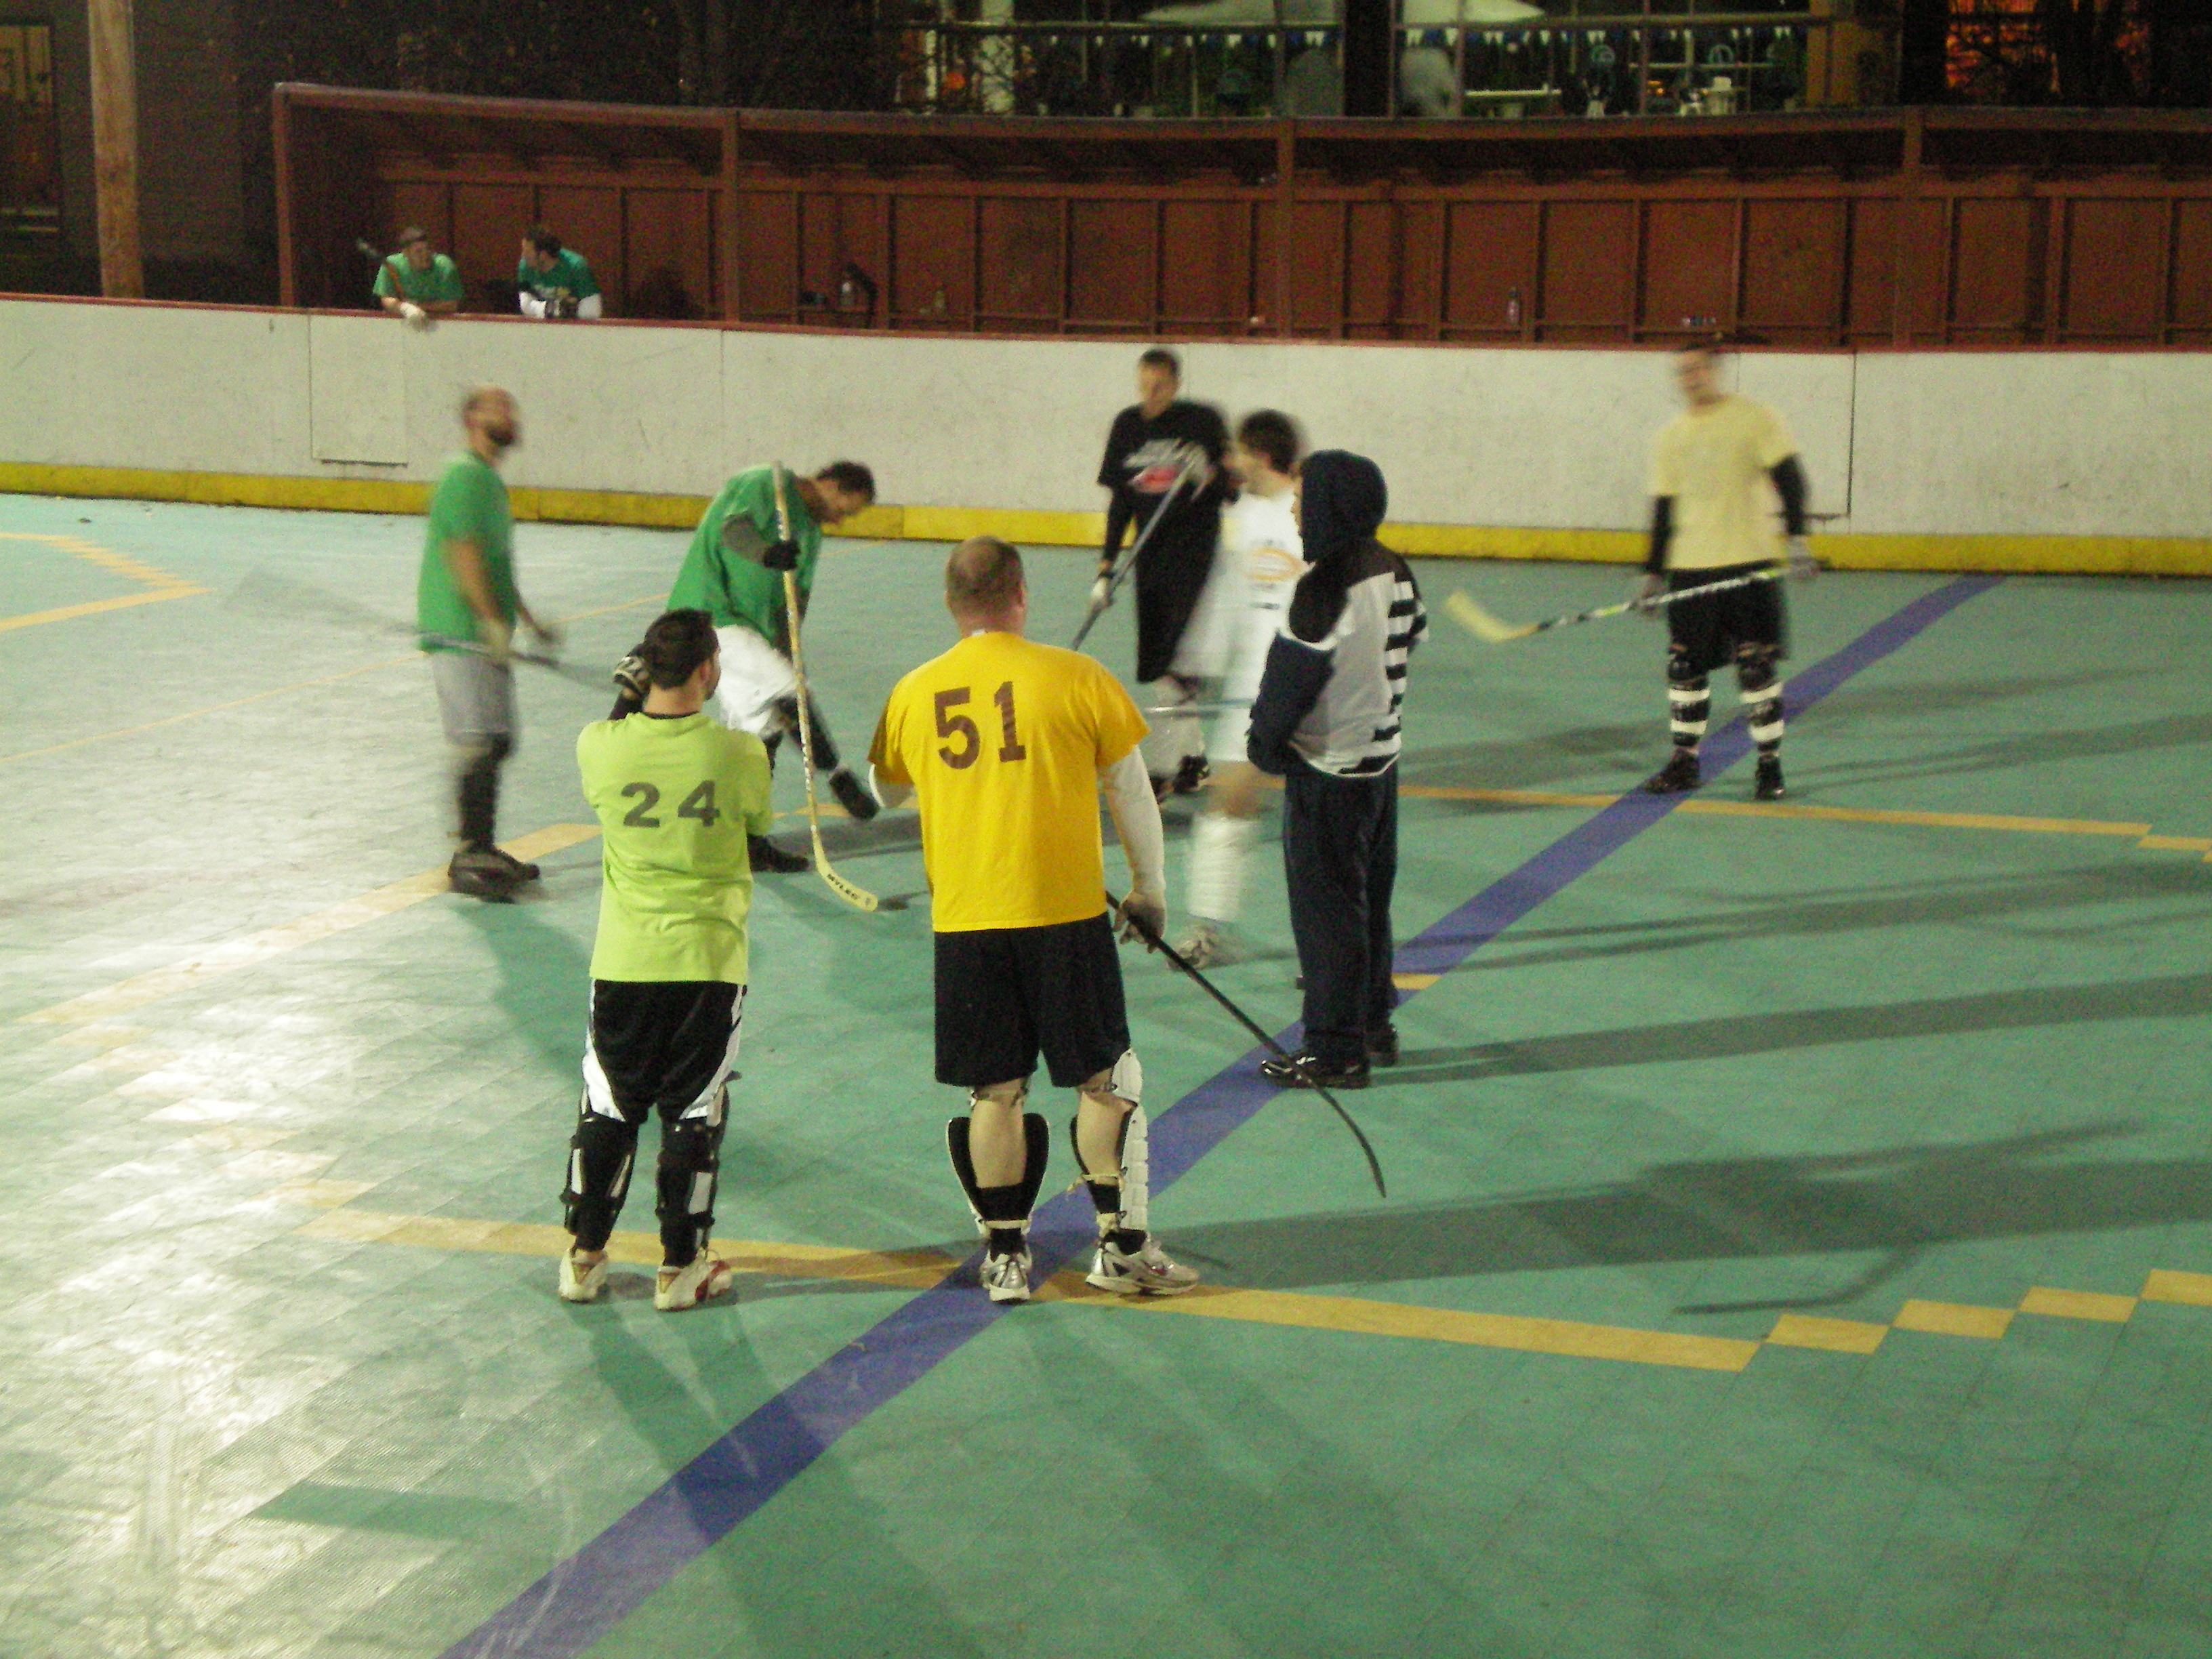 Students Stay Fit Playing Dek Hockey | The Nittany Pride